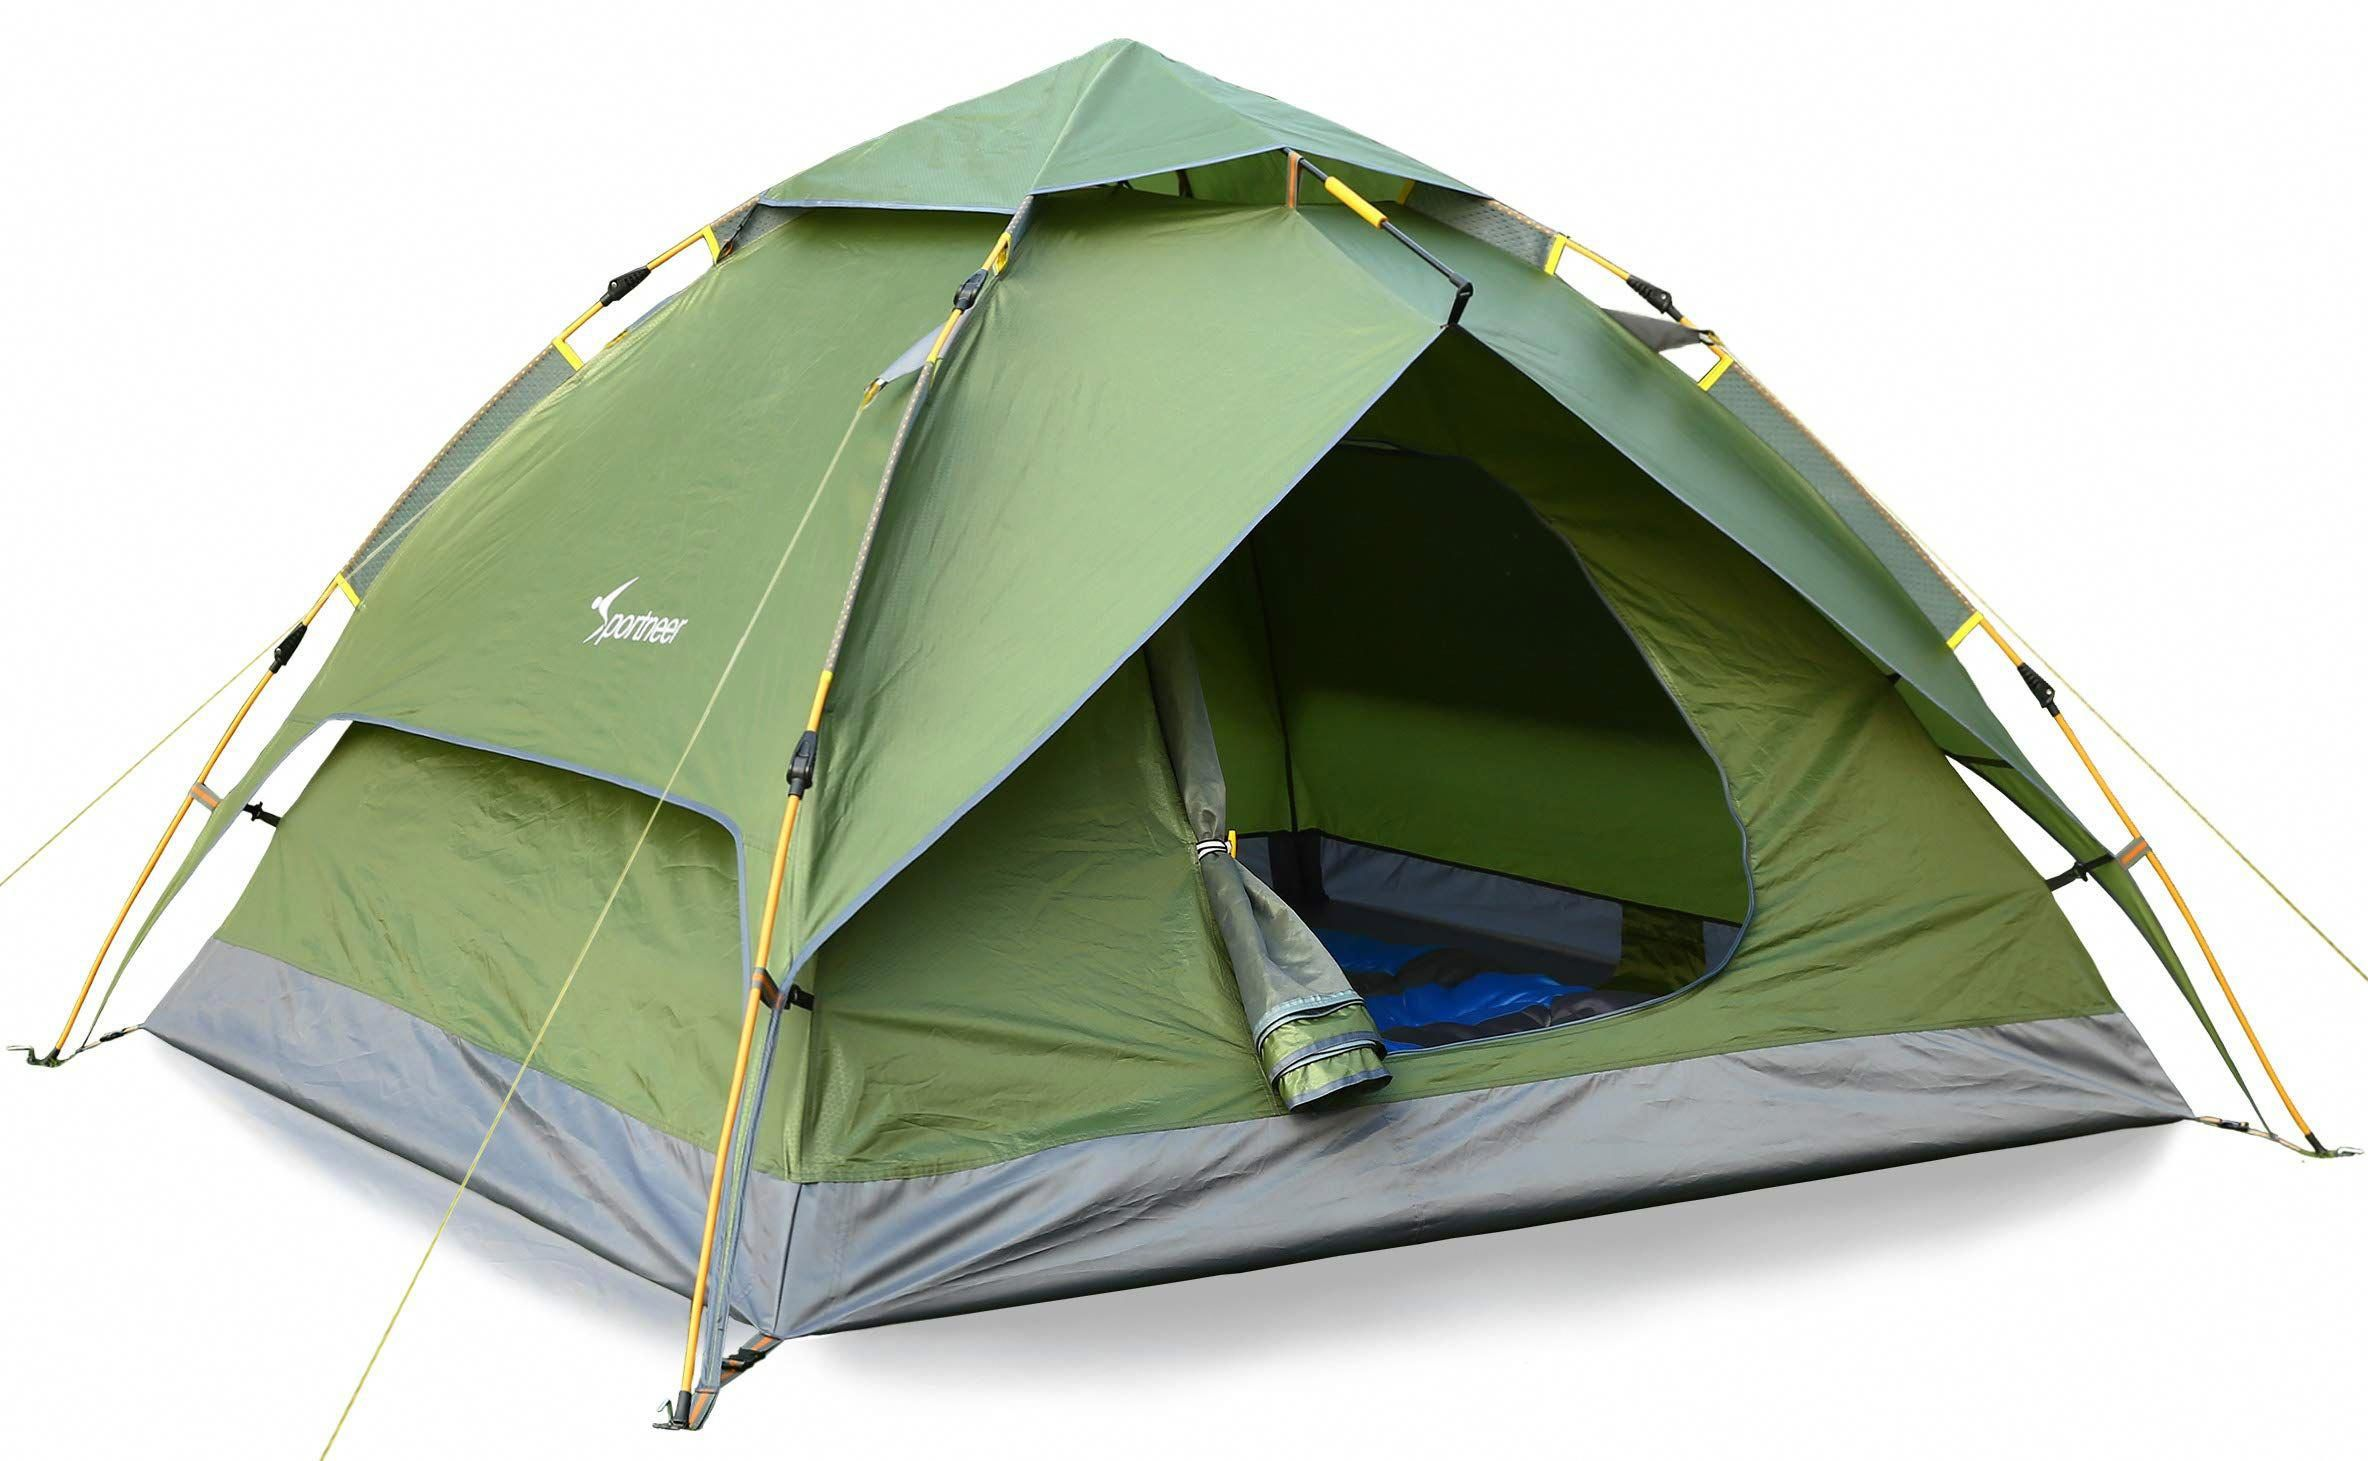 Waterproof Tents Automatic Up Tent Family Tent ; Camping Tent 2-3 Person